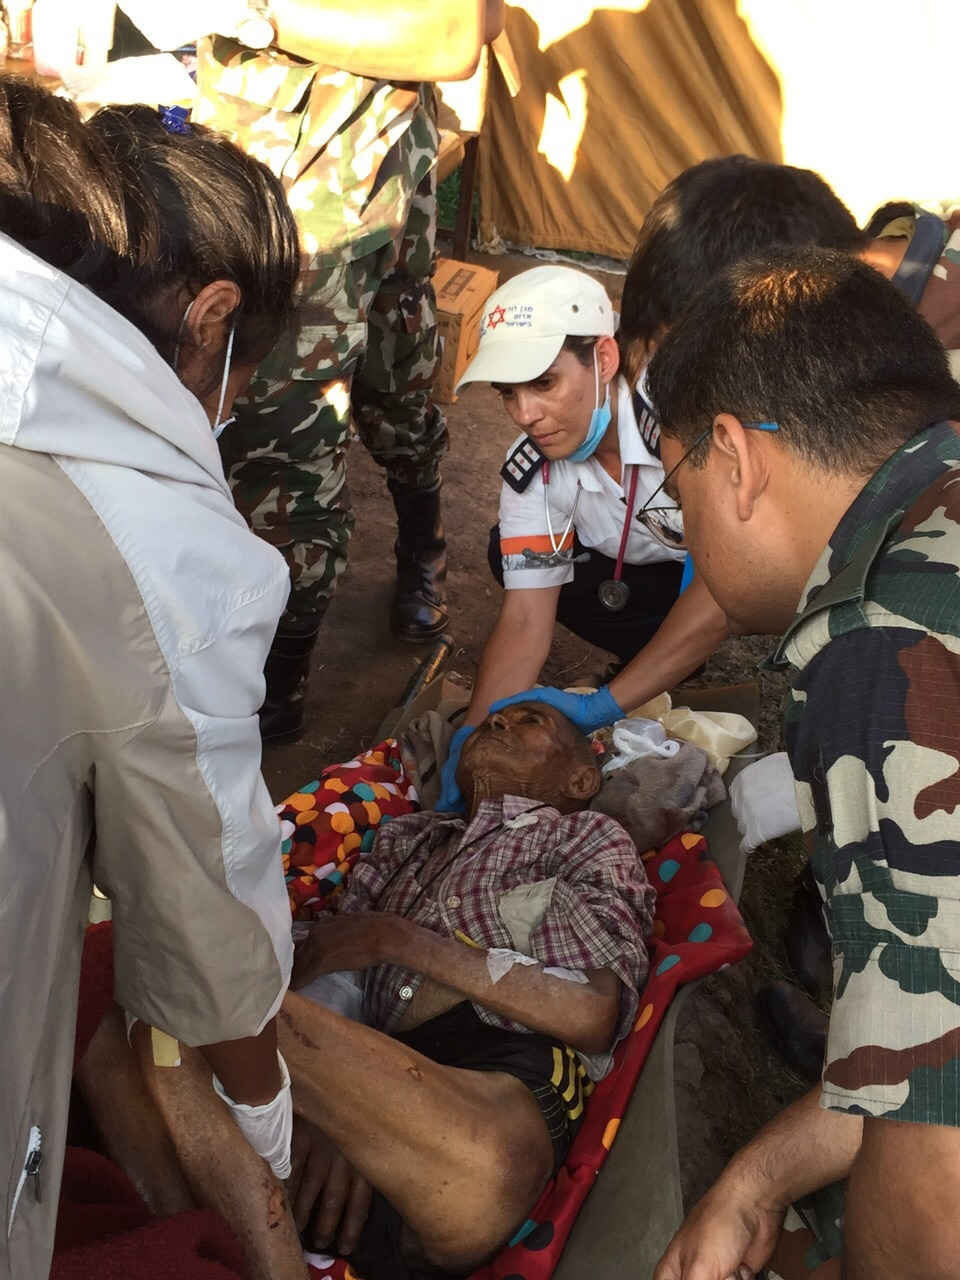 Click photo to download. Caption: Magen David Adom's Ravit Martinez (in center, wearing baseball cap) helps treat a wounded Nepalese citizen at a military hospital following the deadly earthquake that struck Nepal. Credit: Magen David Adom.